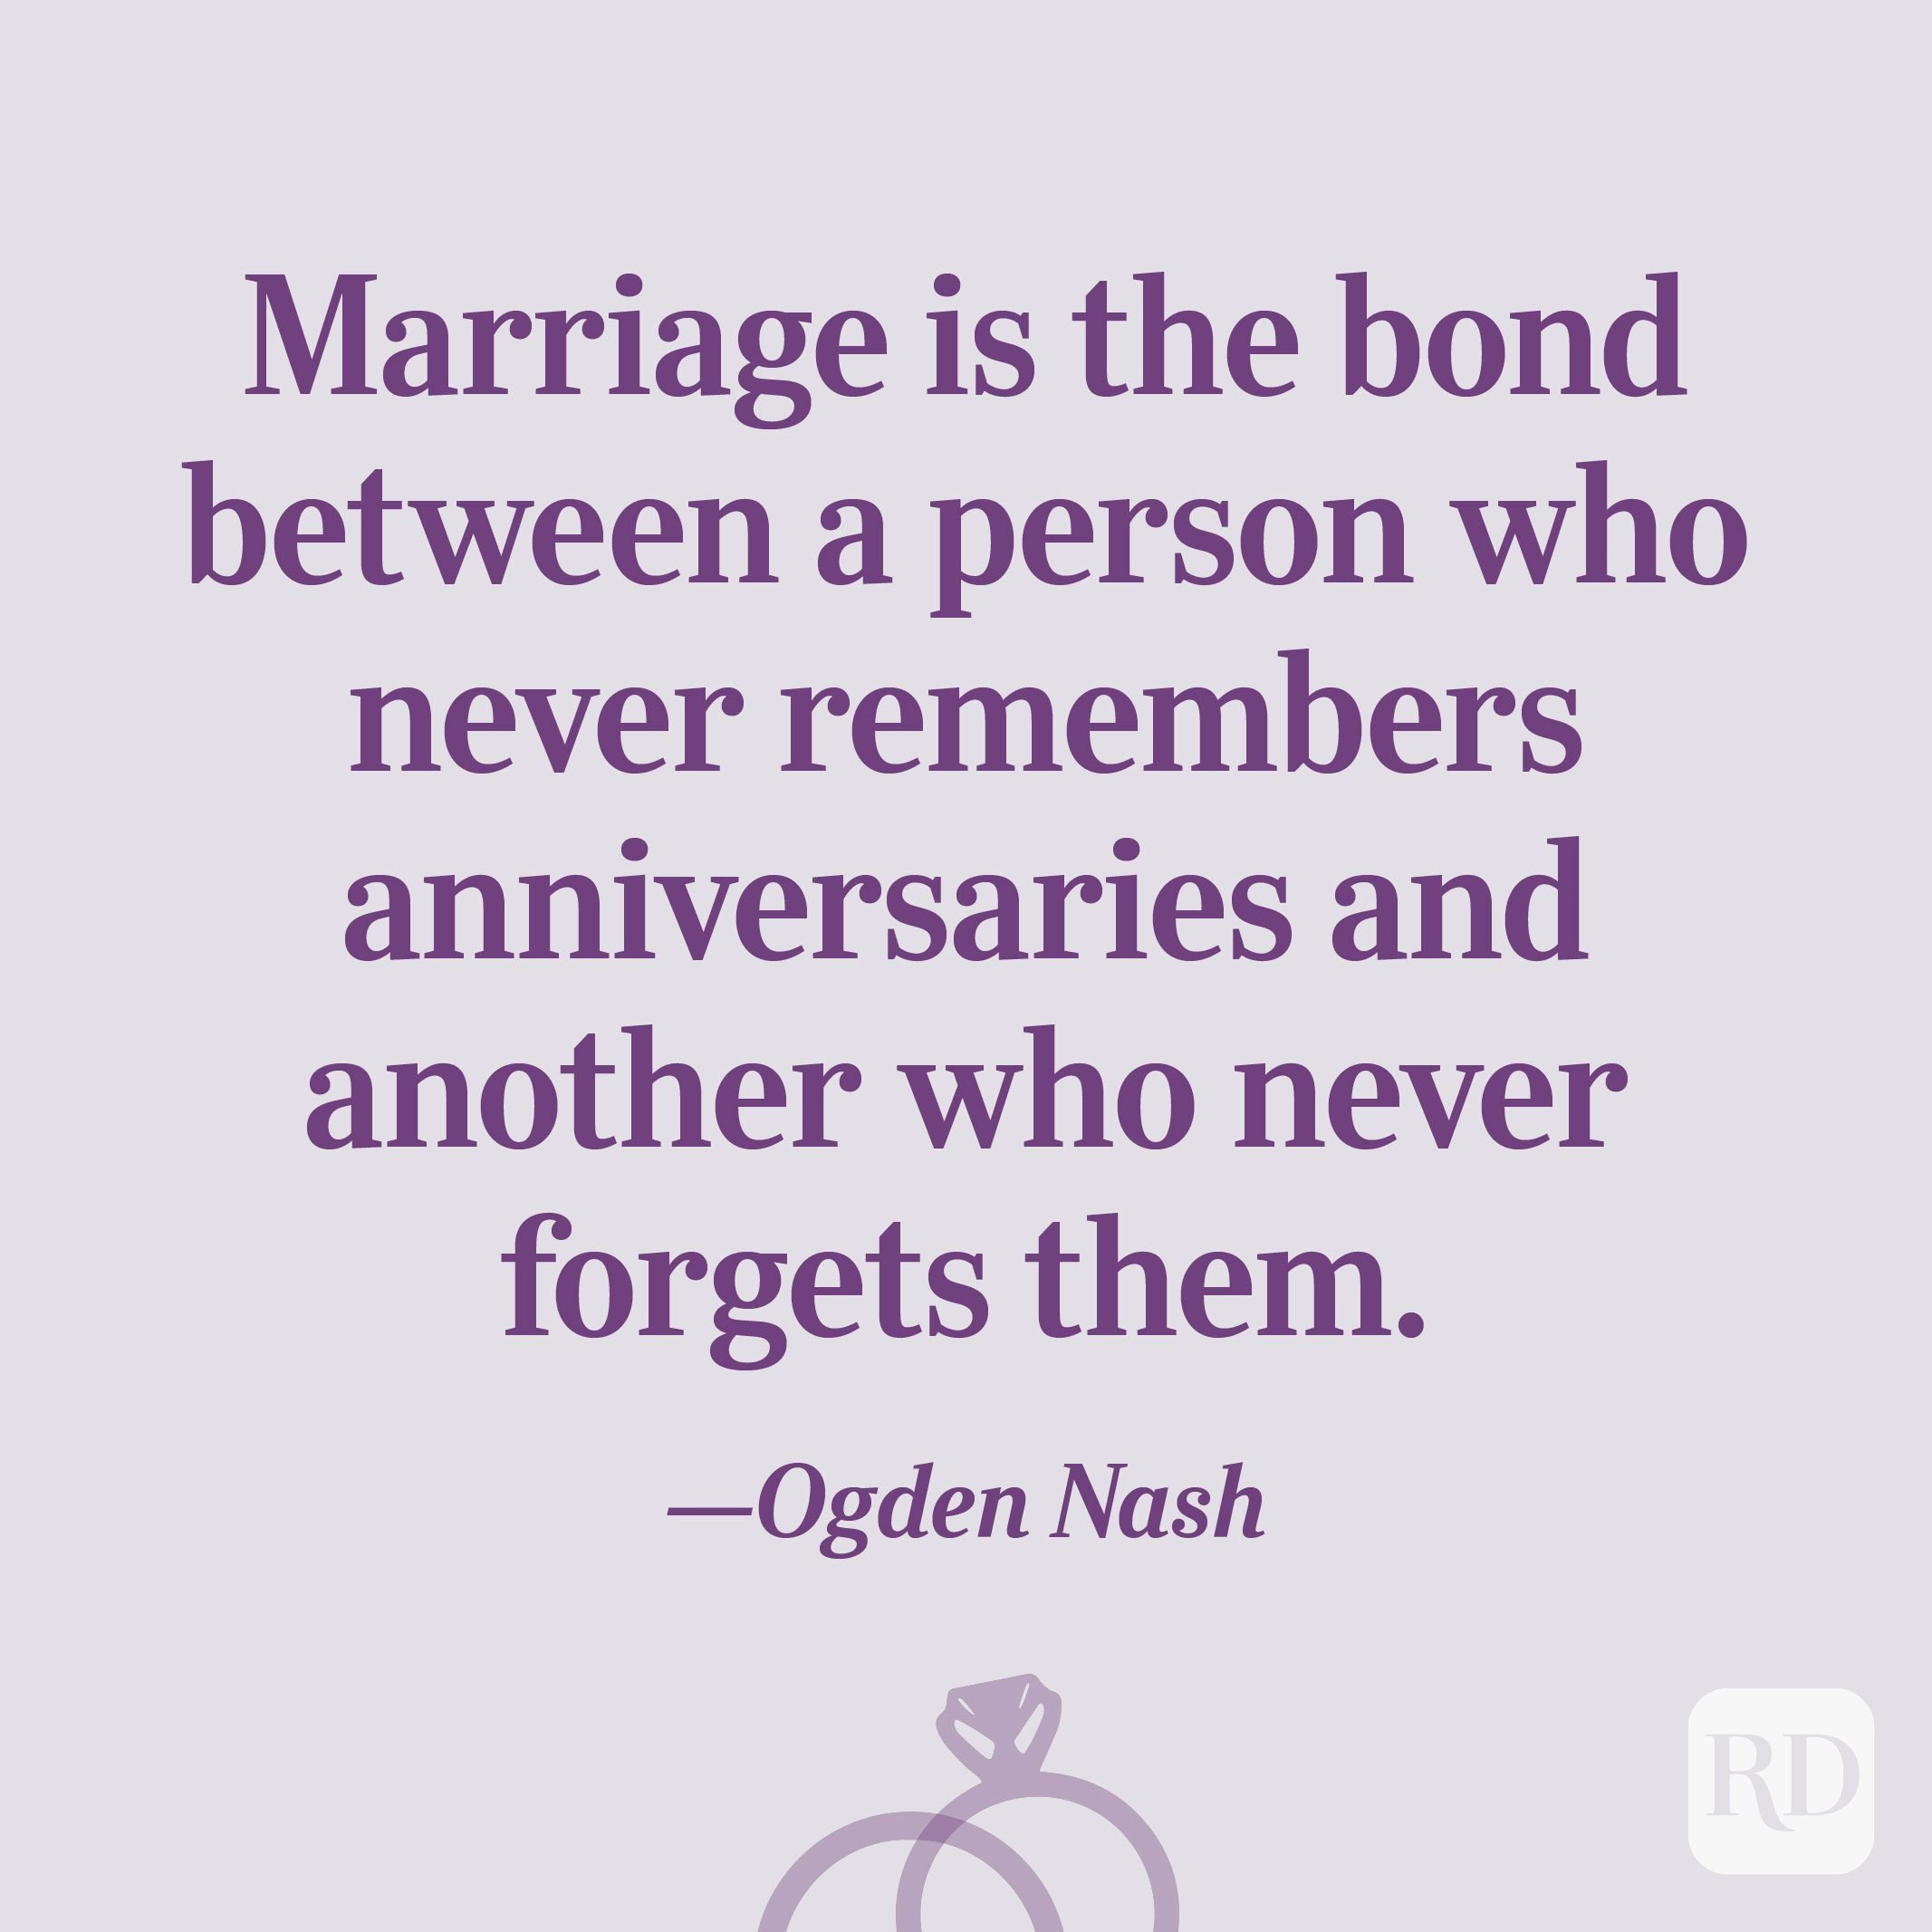 """Marriage is the bond between a person who never remembers anniversaries and another who never forgets them.""—Ogden Nash"